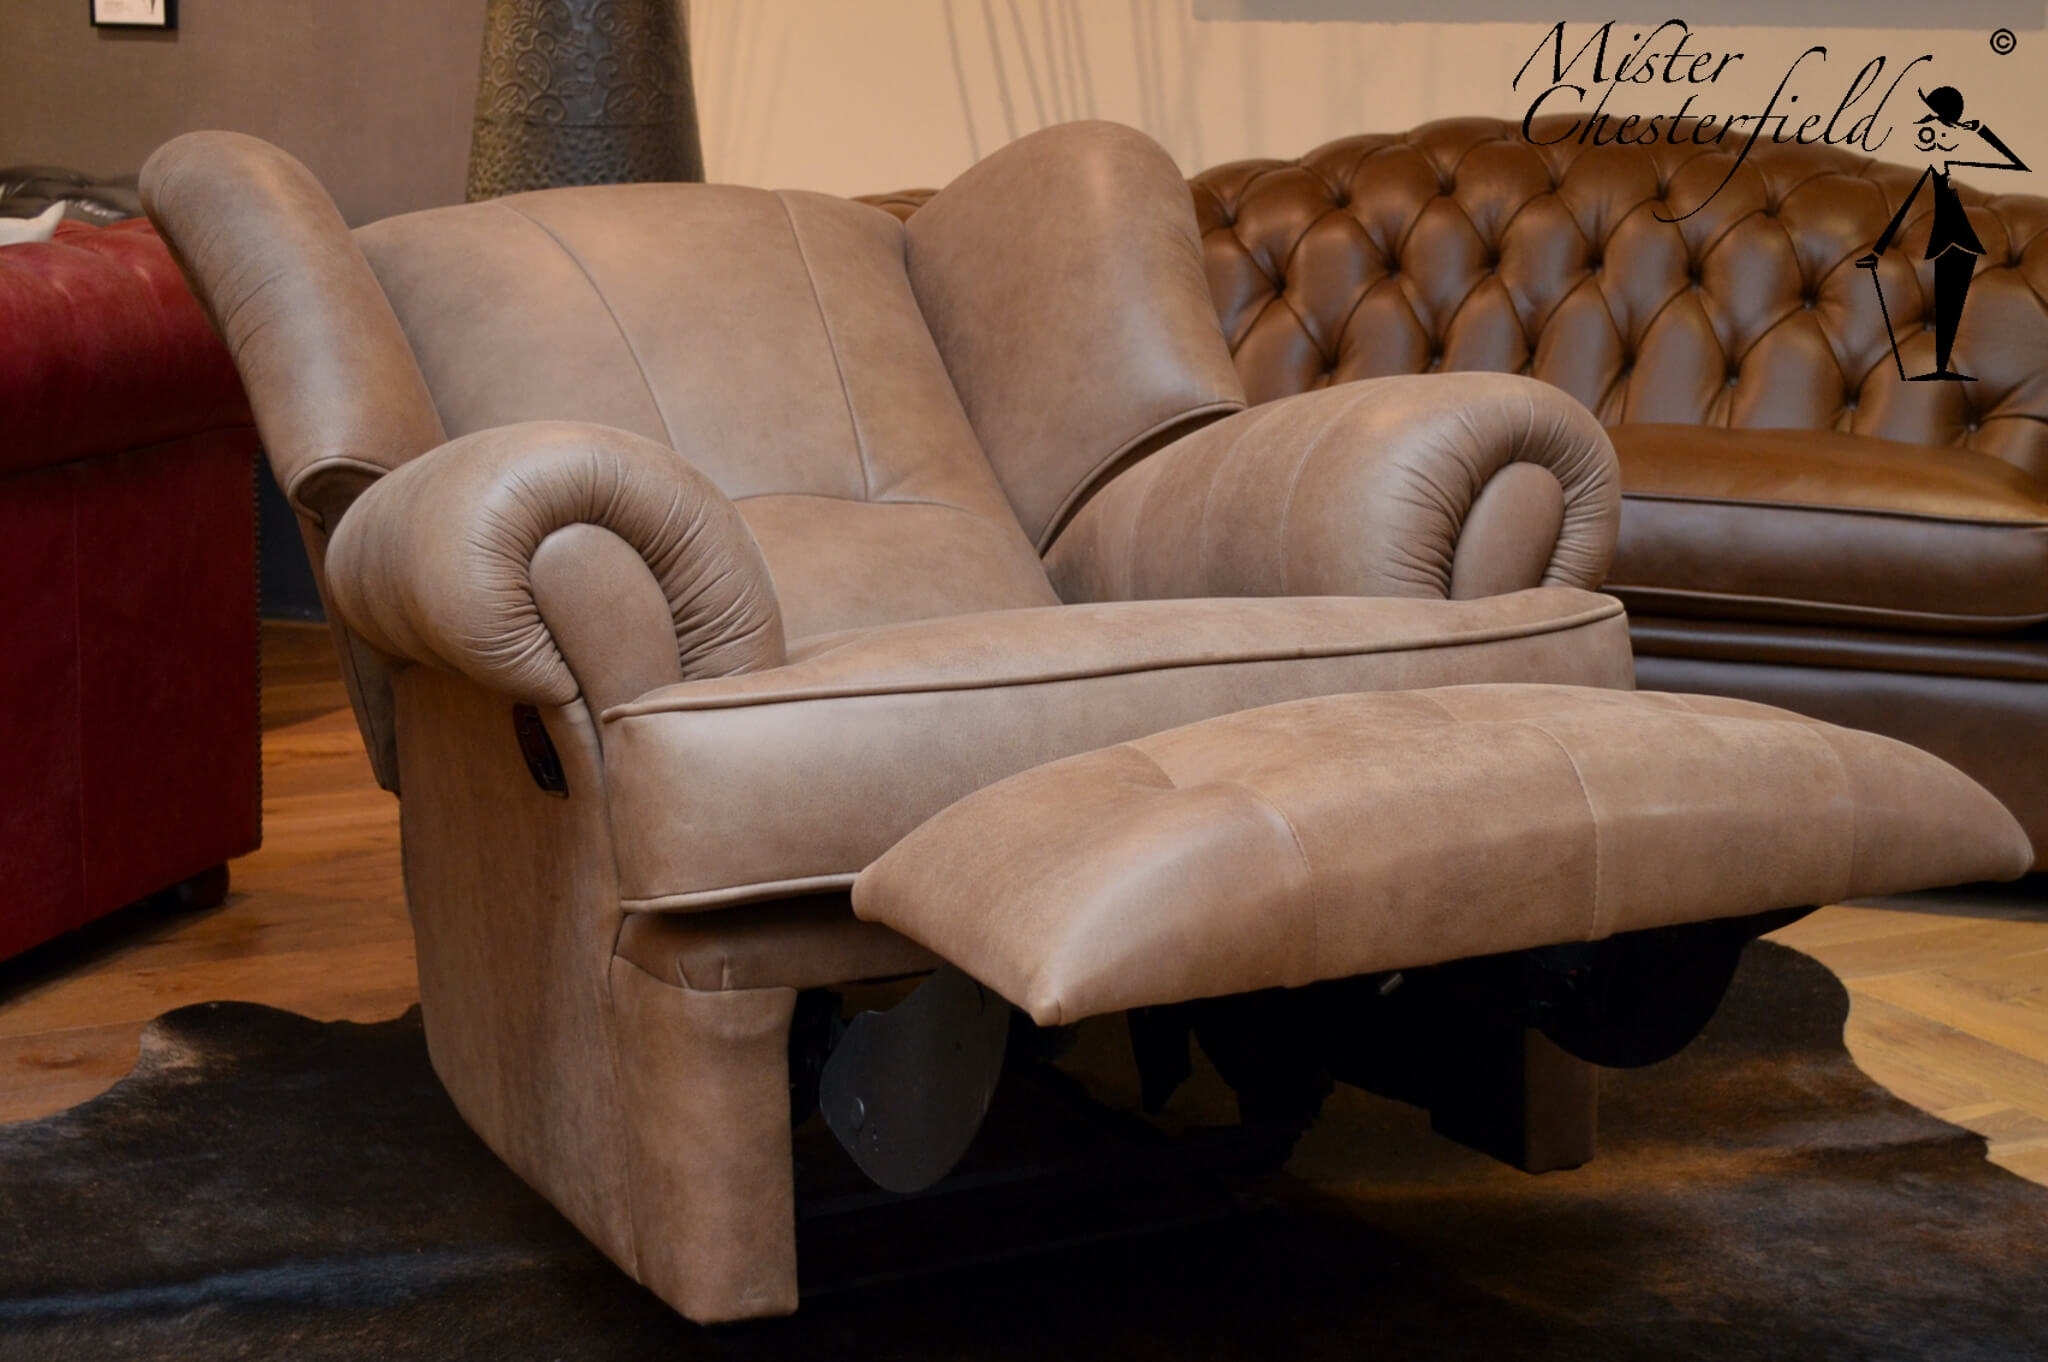 chesterfield-recliner-relaxfauteuil